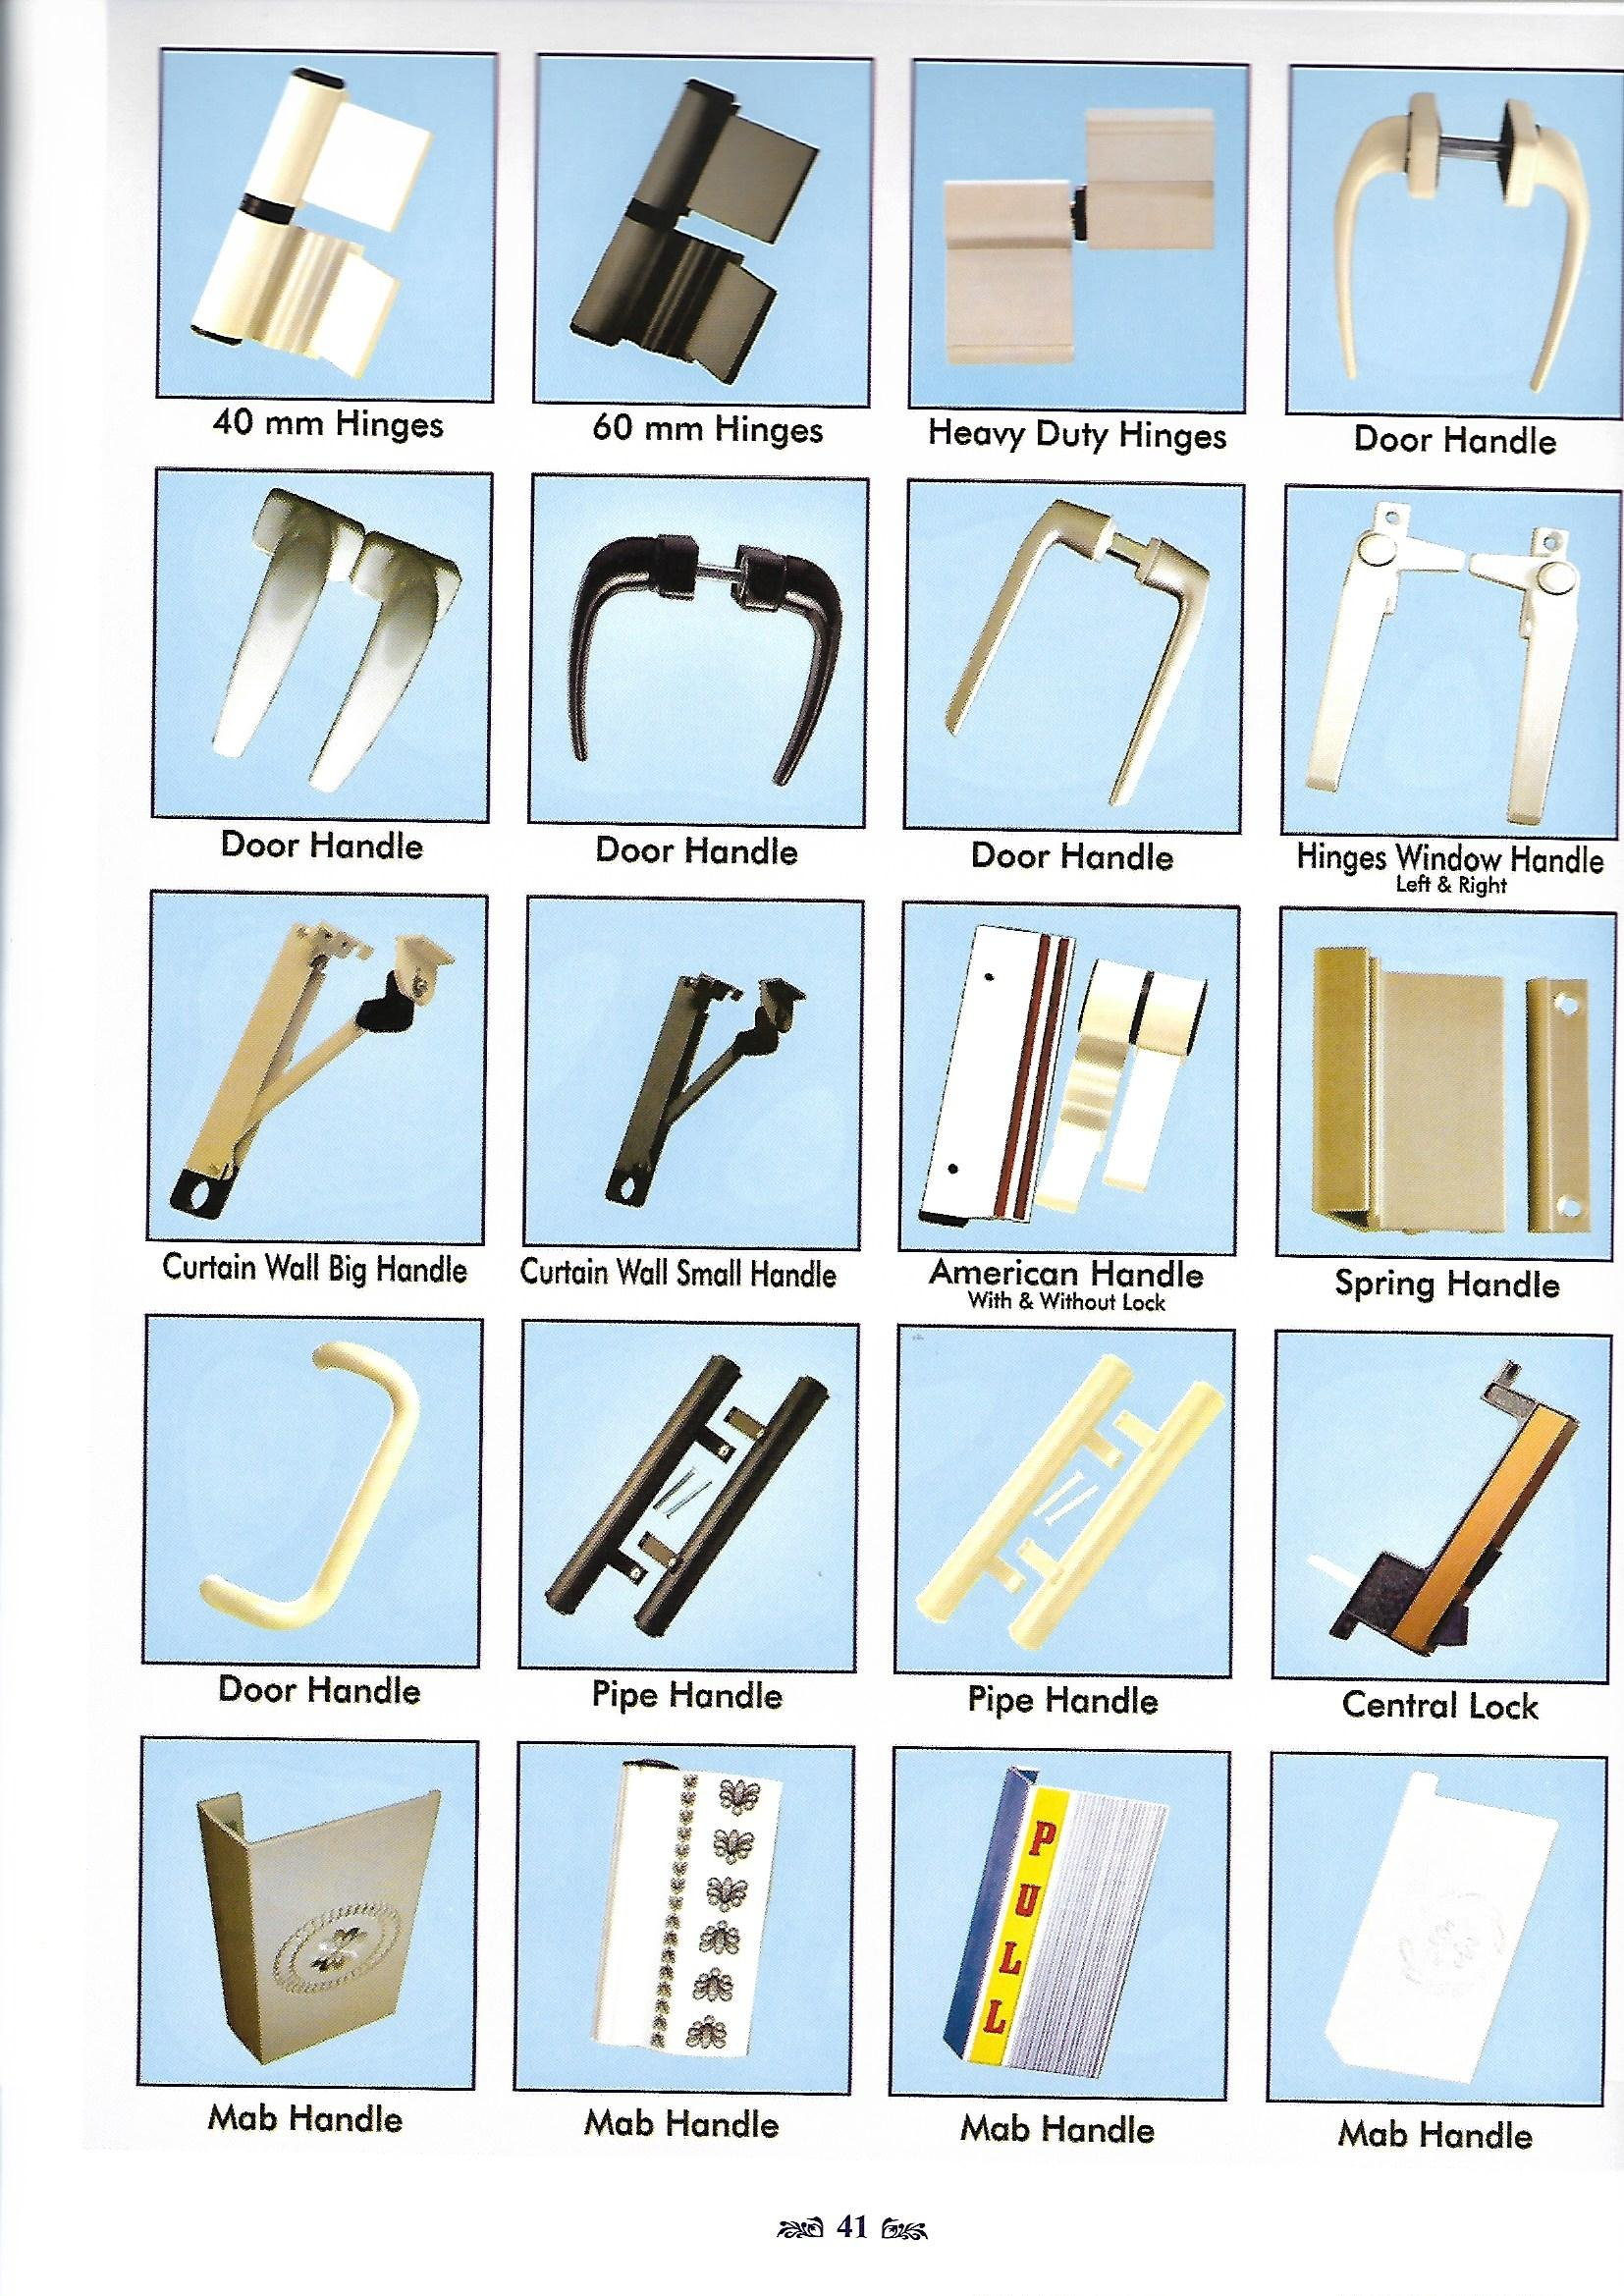 Accessories Page 1